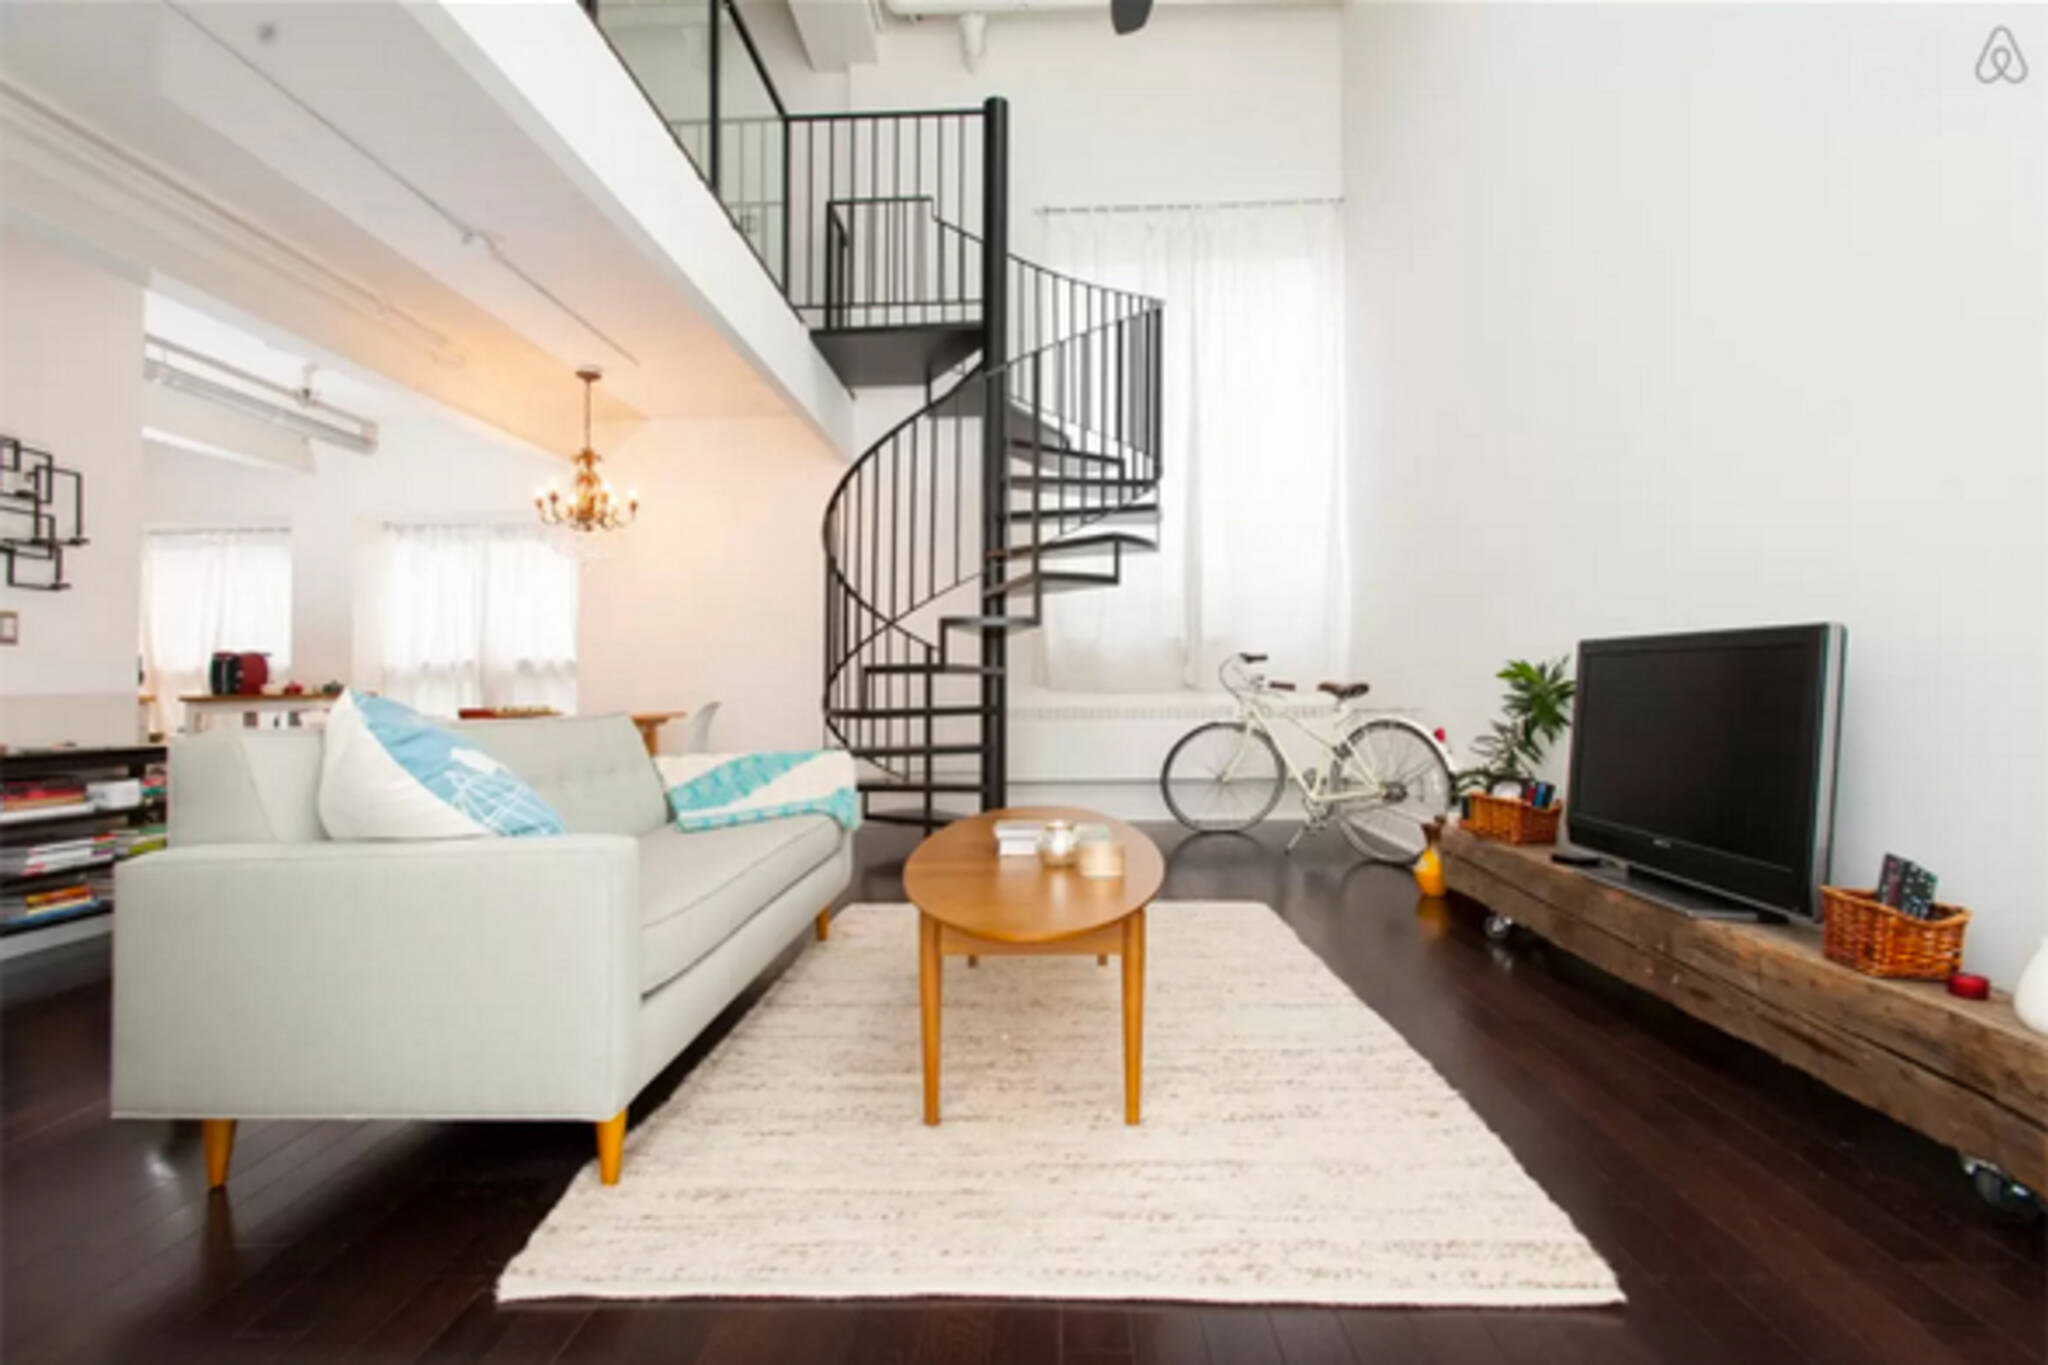 The Top 10 Airbnb Listings In Toronto